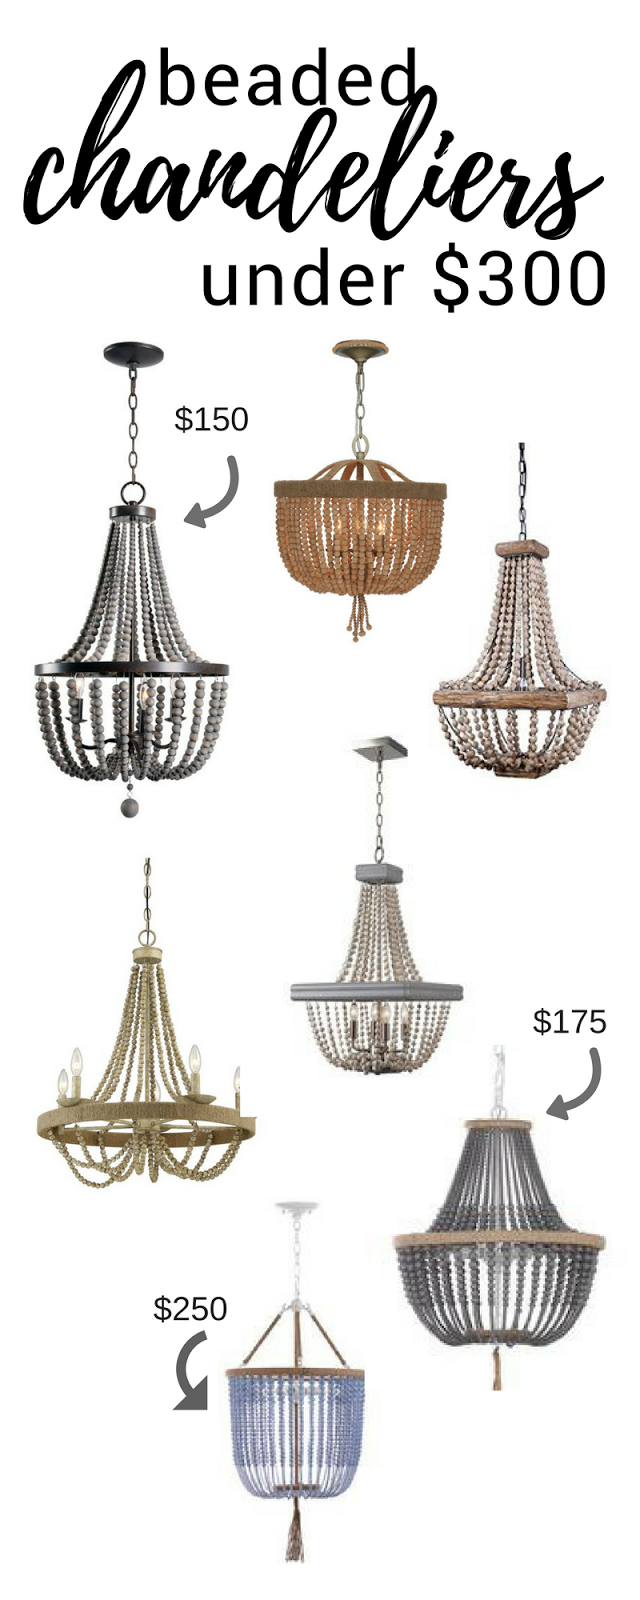 Beaded Chandeliers: The Best of the Best for Under $300